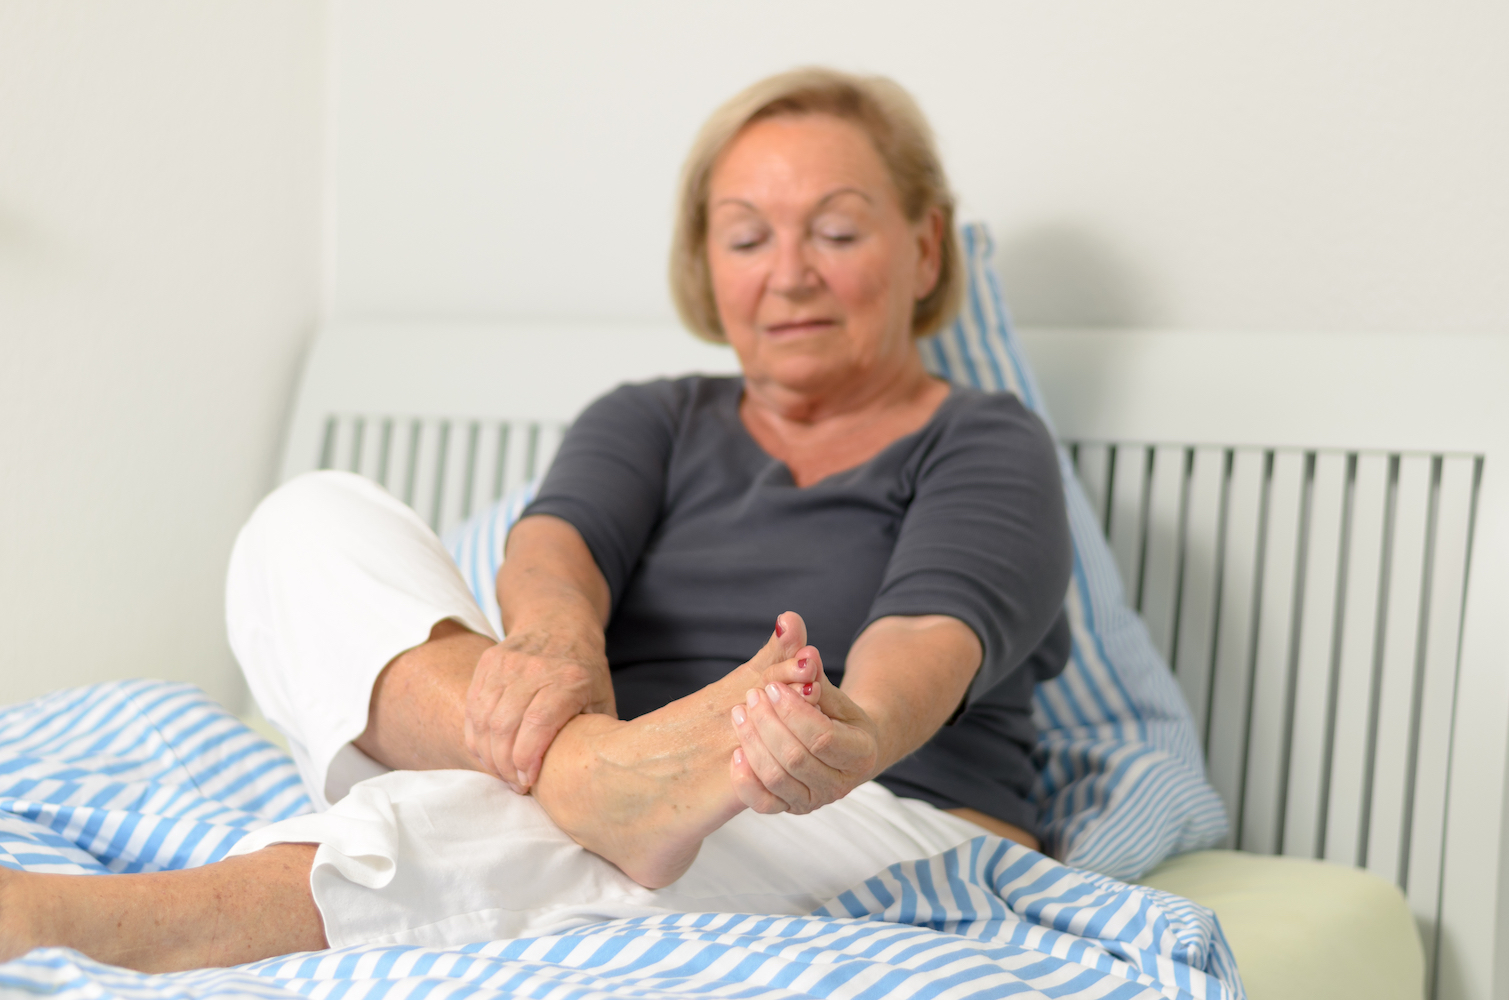 How to Relieve Foot Pain in 6 Easy Steps You Can Do At Home